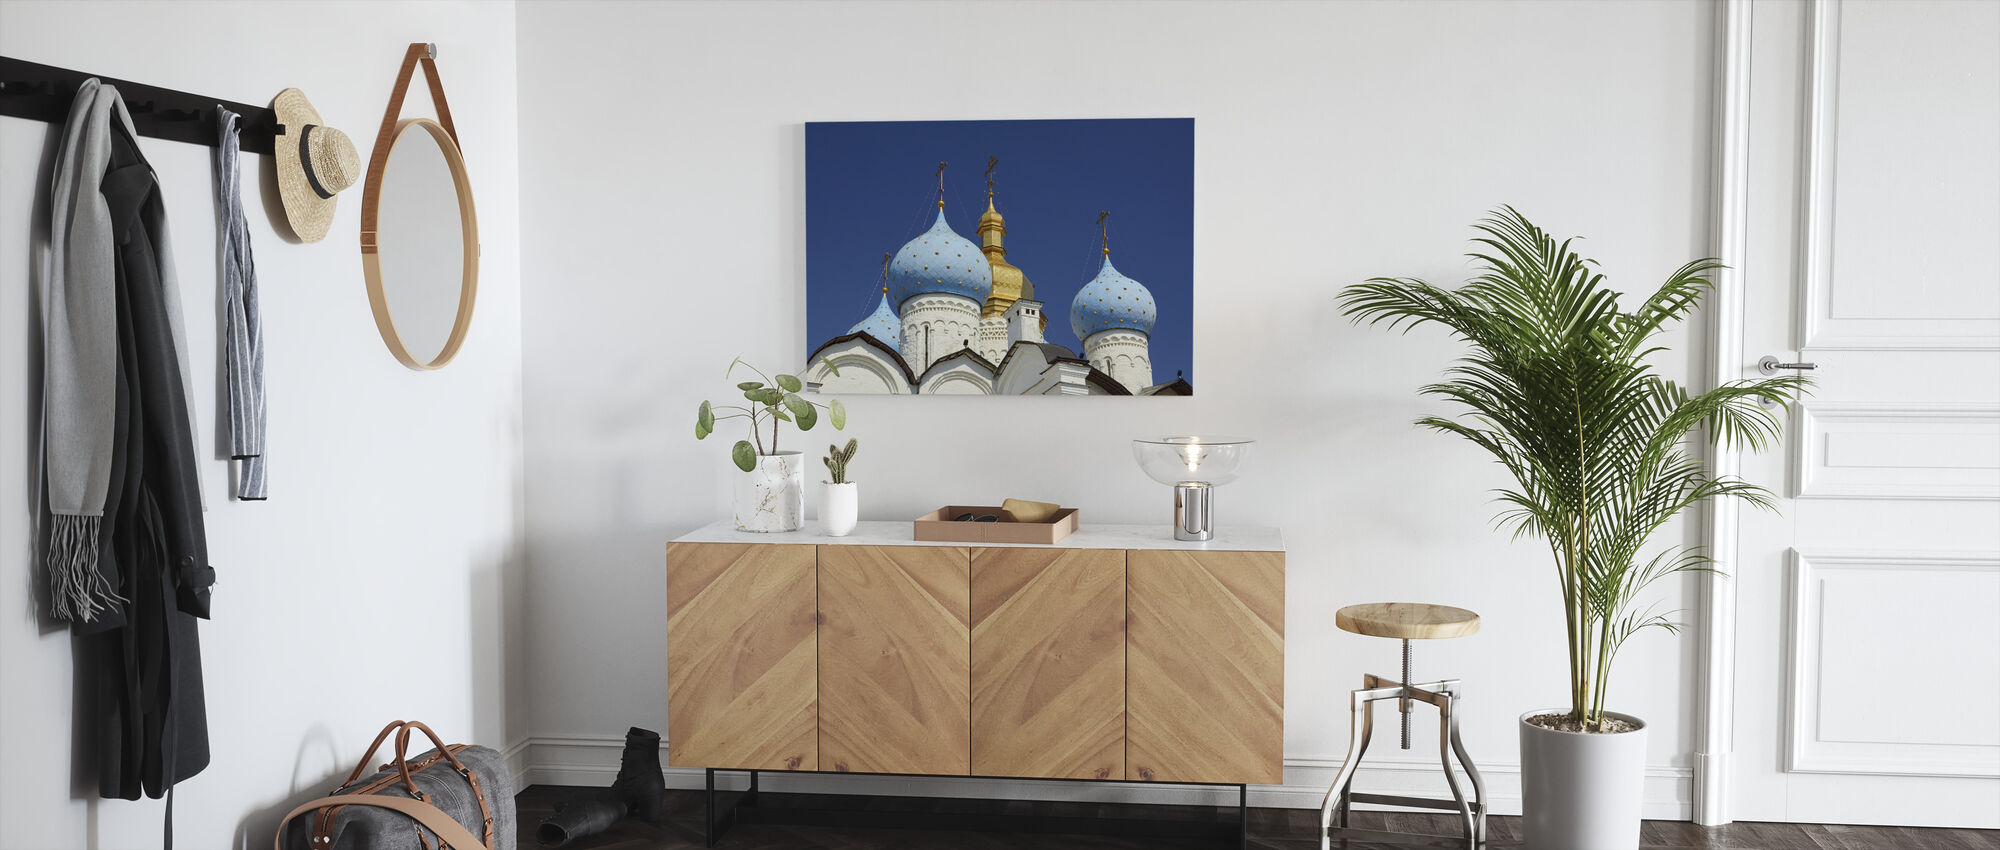 Annunciation Cathedral, Moscow - Canvas print - Hallway